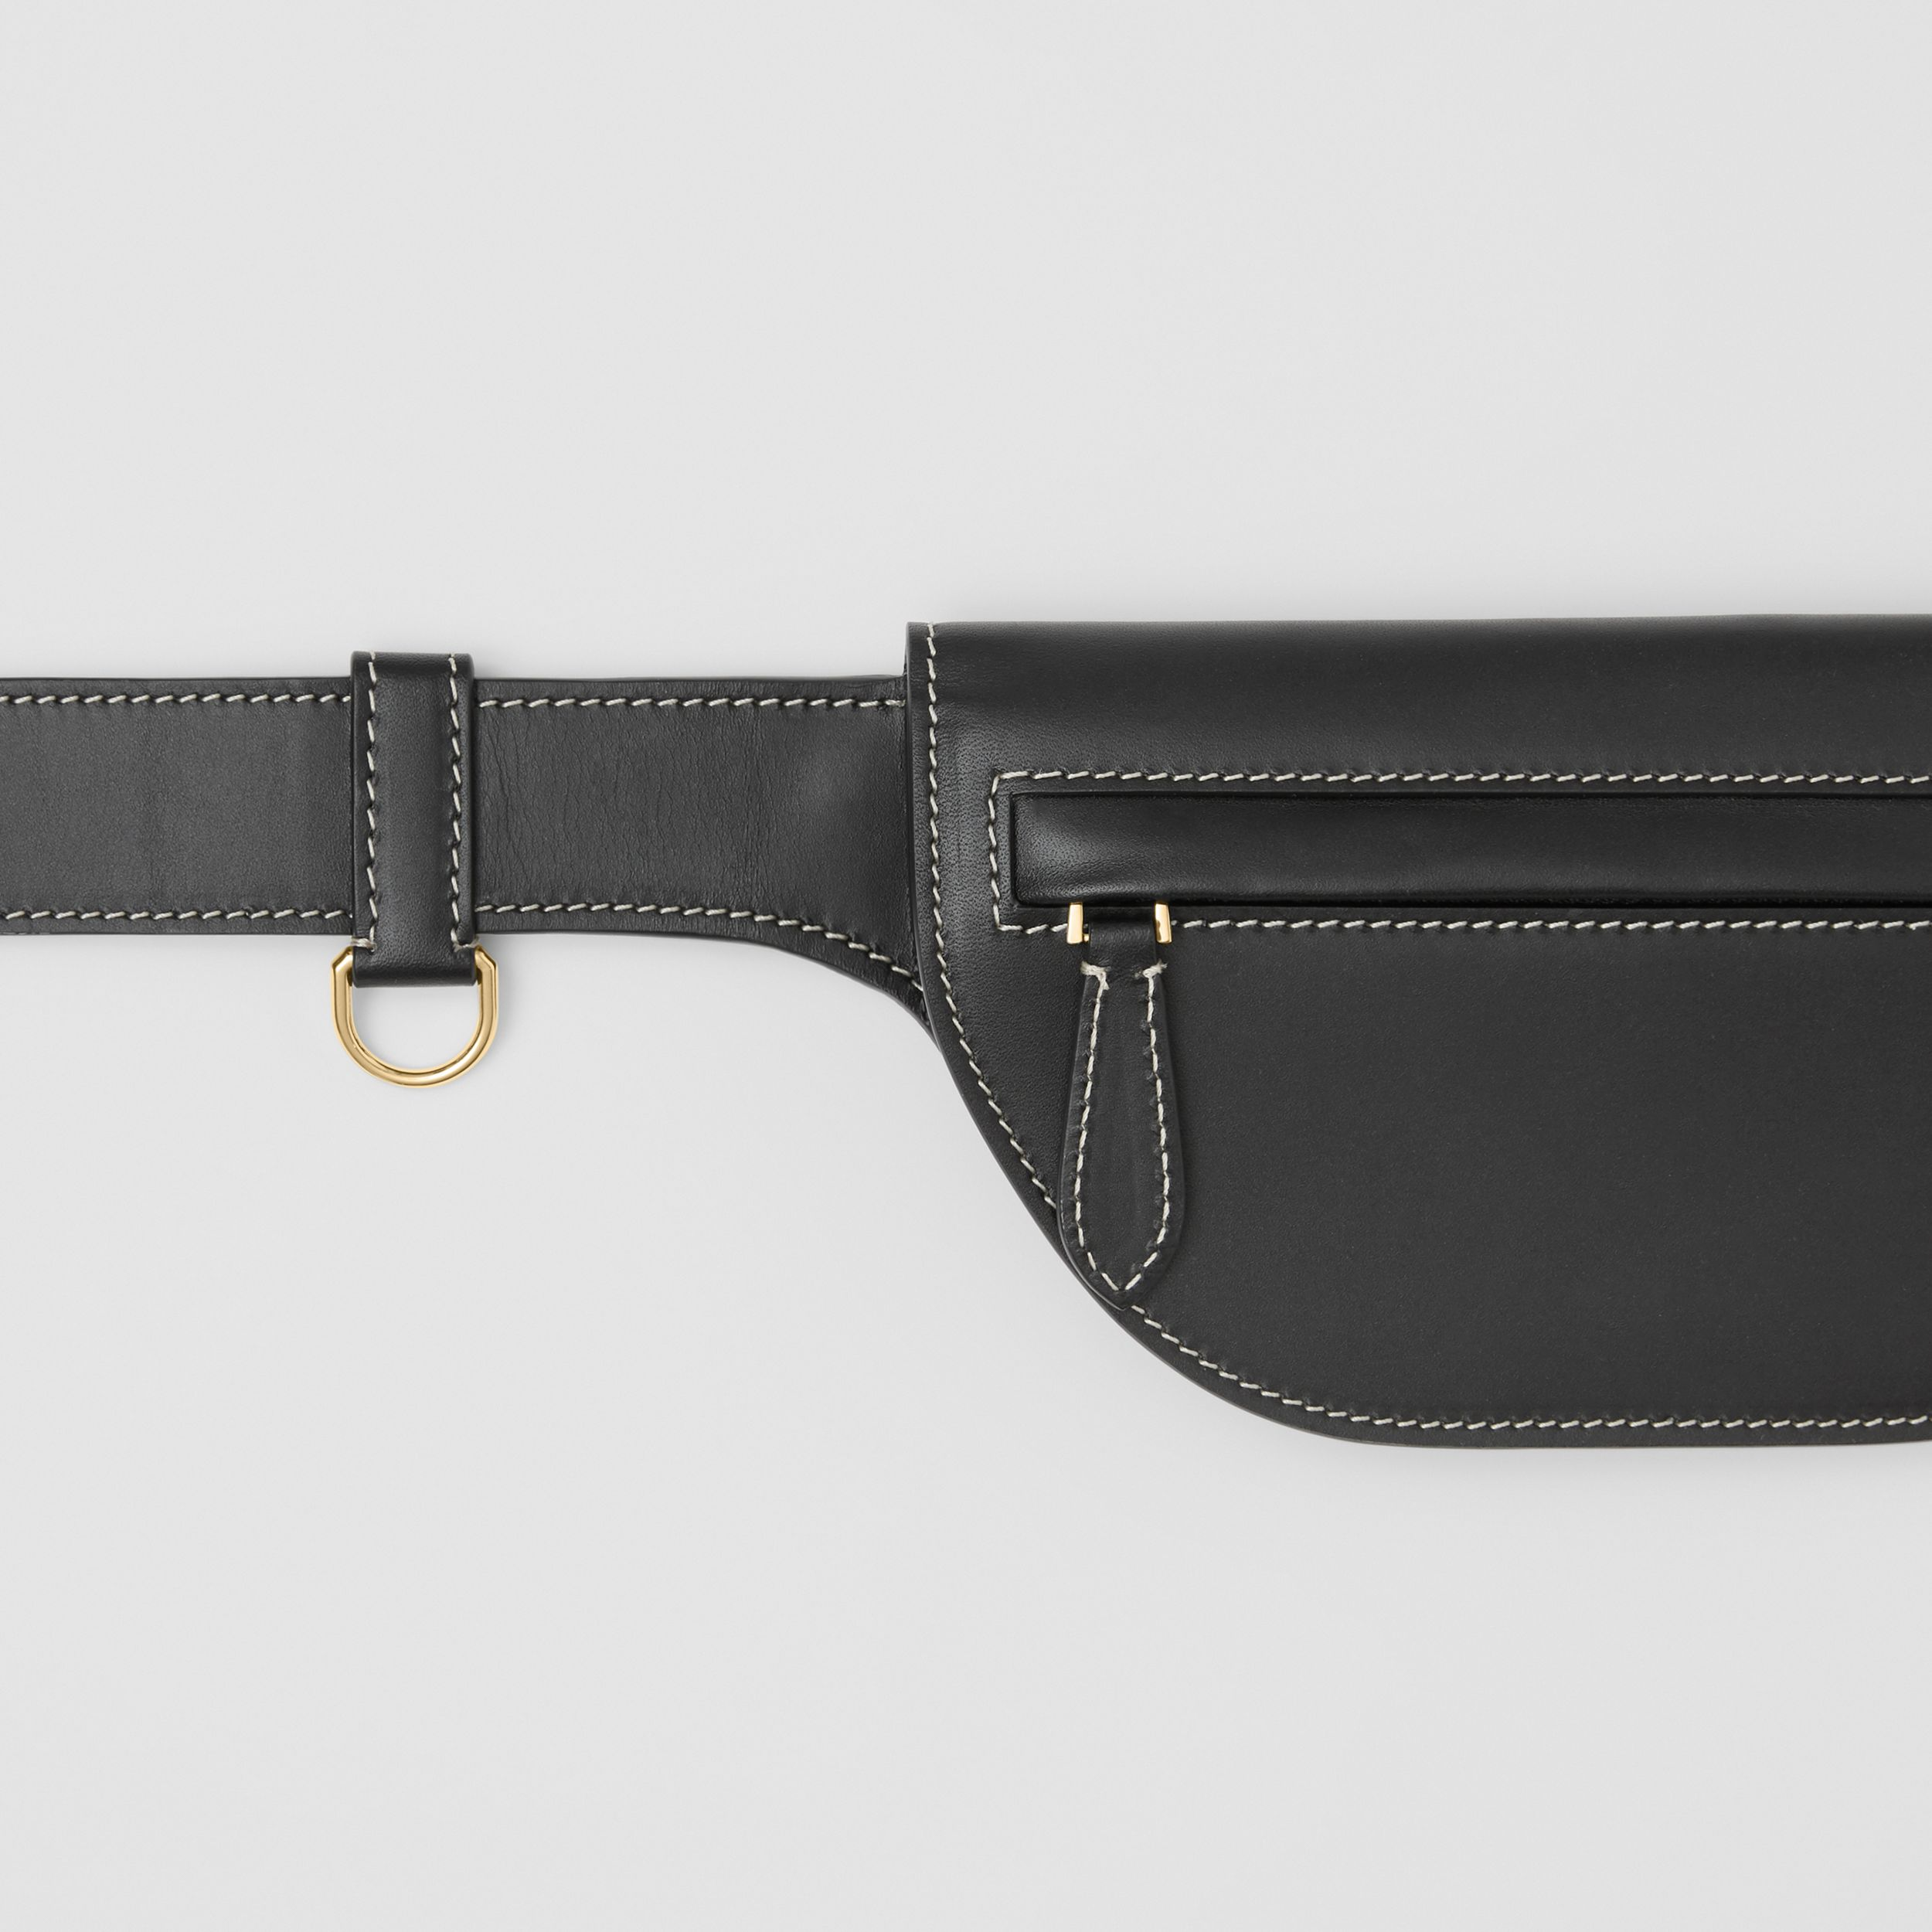 Topstitched Leather Olympia Belt Bag in Black - Women | Burberry United Kingdom - 2